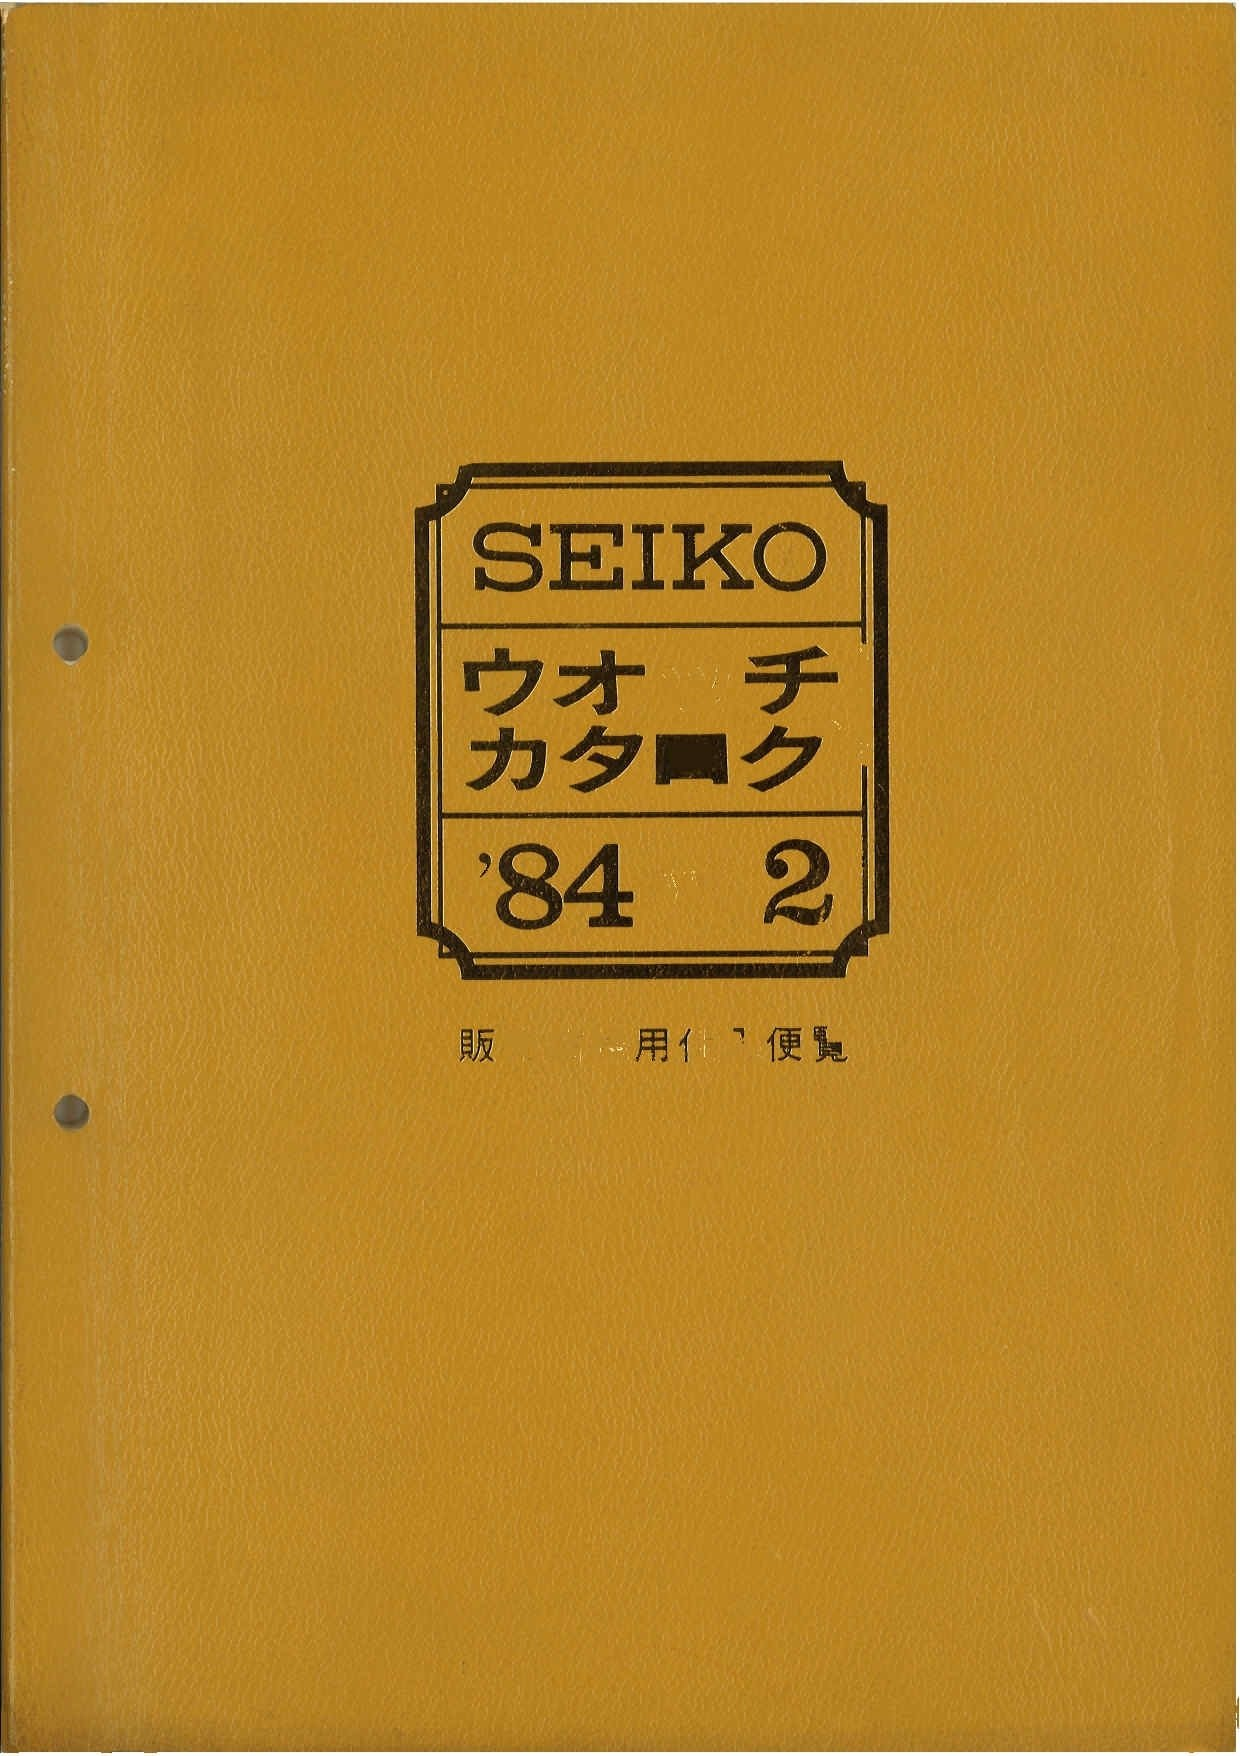 S229 1984 Catalog Cover